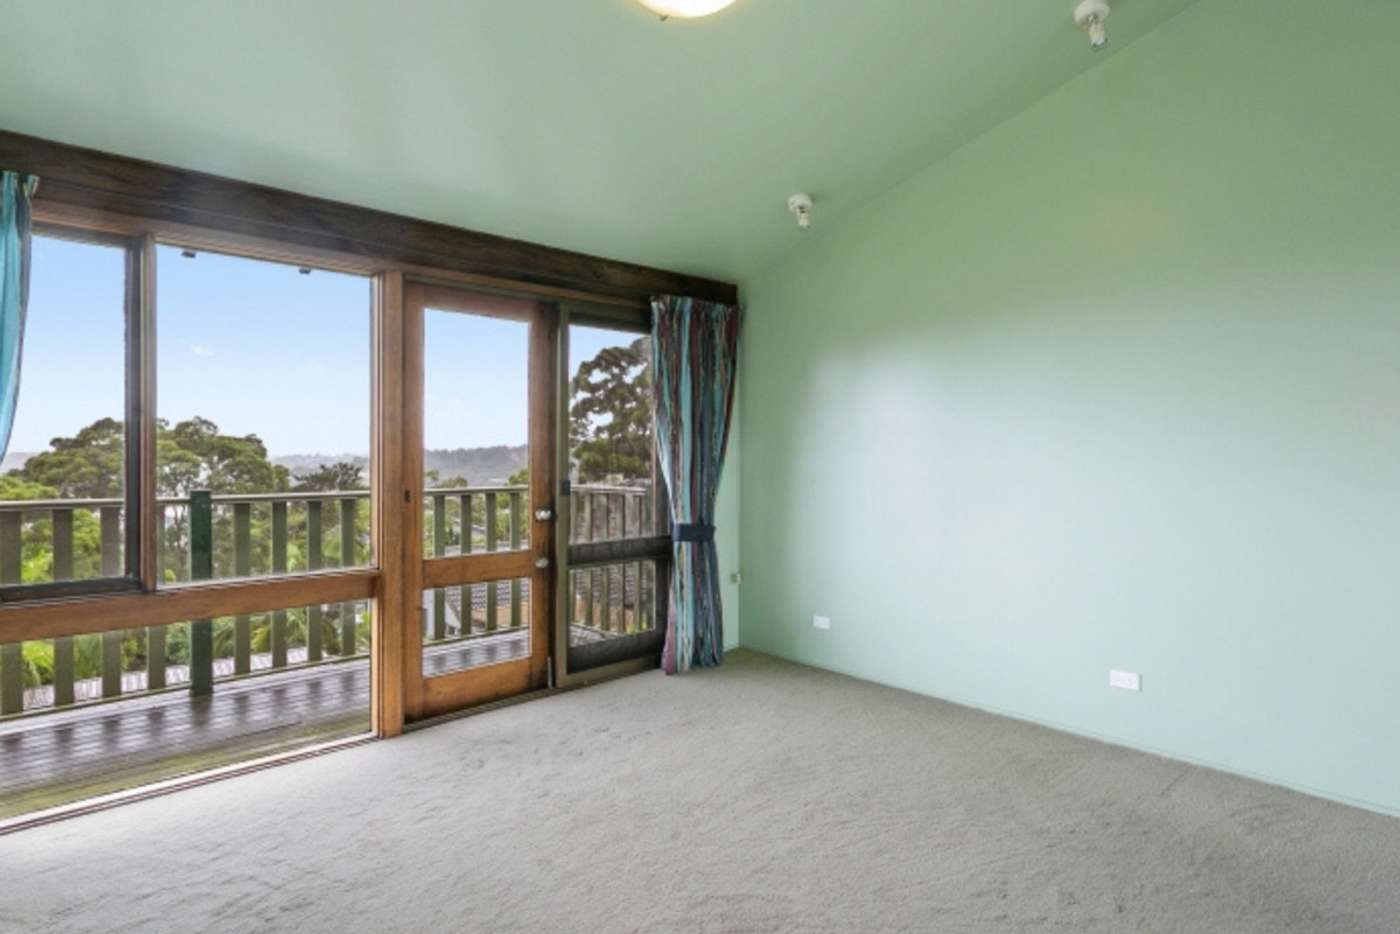 Seventh view of Homely house listing, 31 Beacon Avenue, Beacon Hill NSW 2100